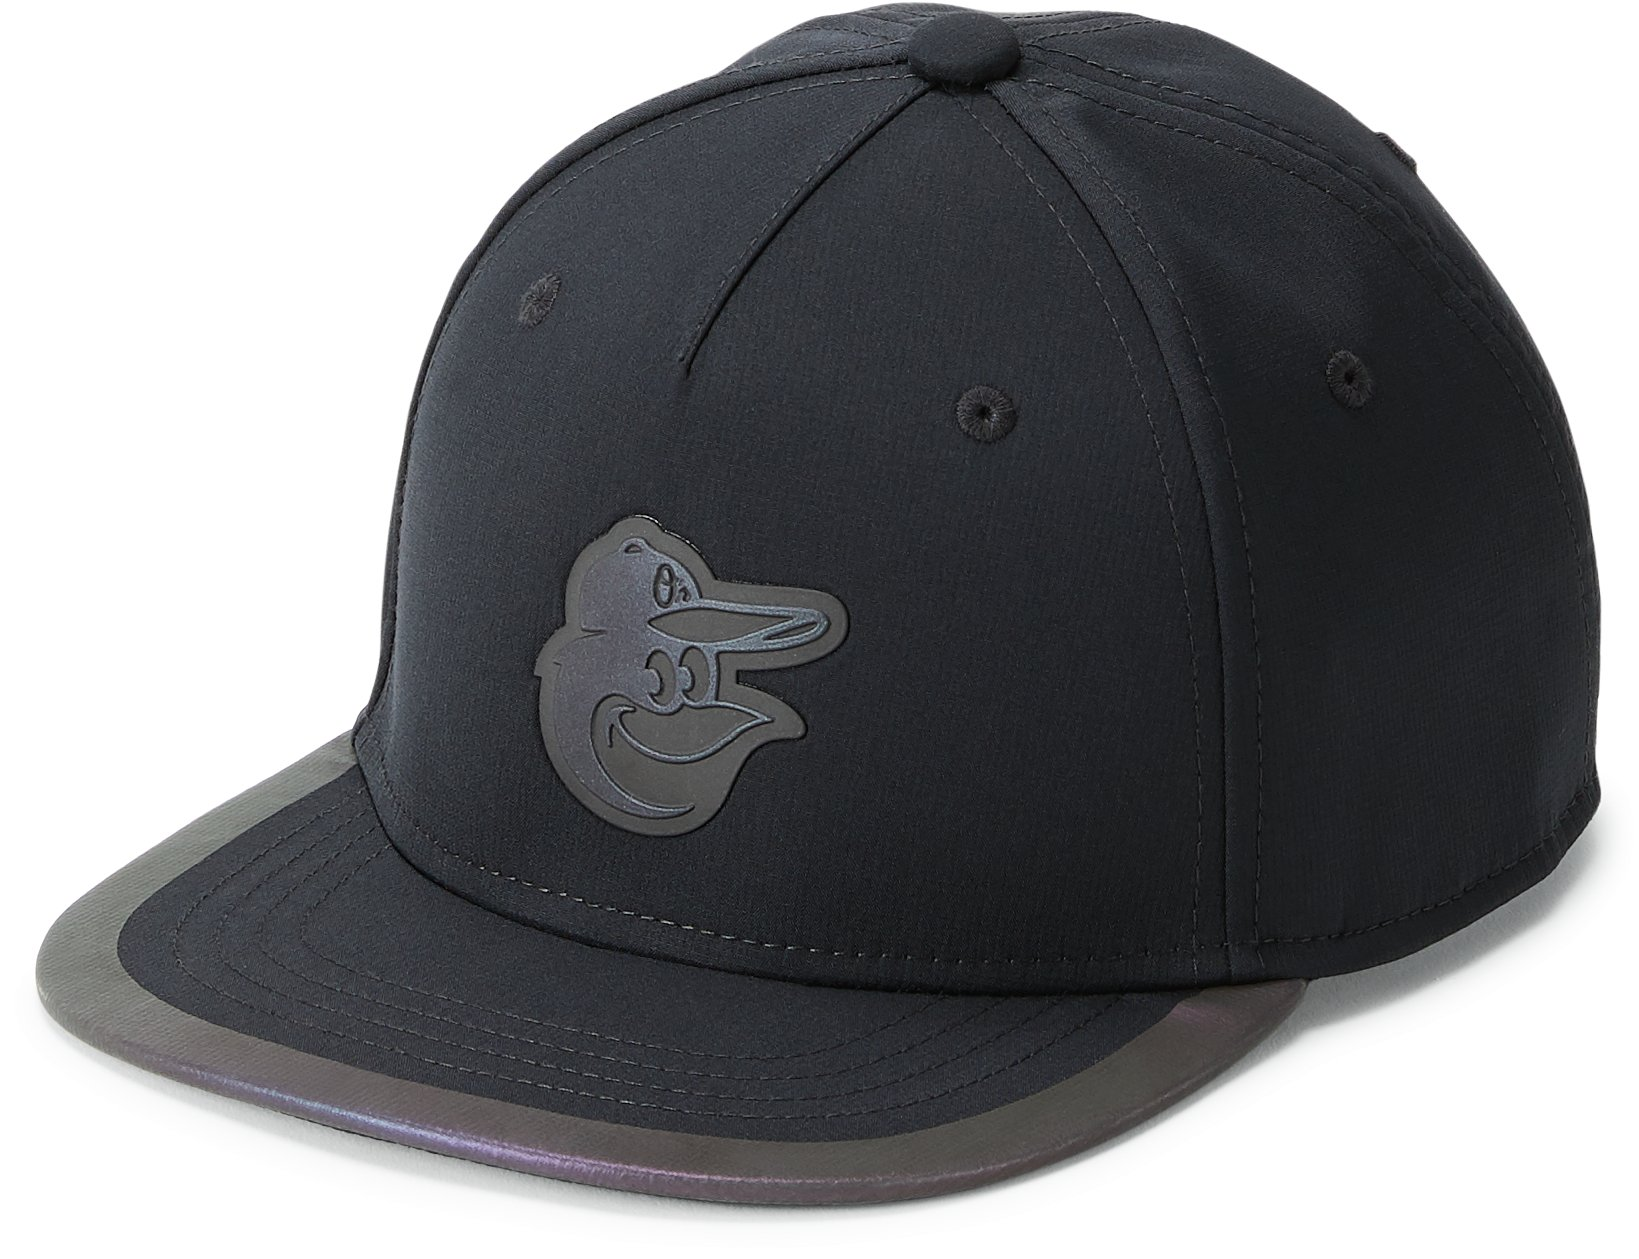 Boy's MLB Iridescent Cap, Black